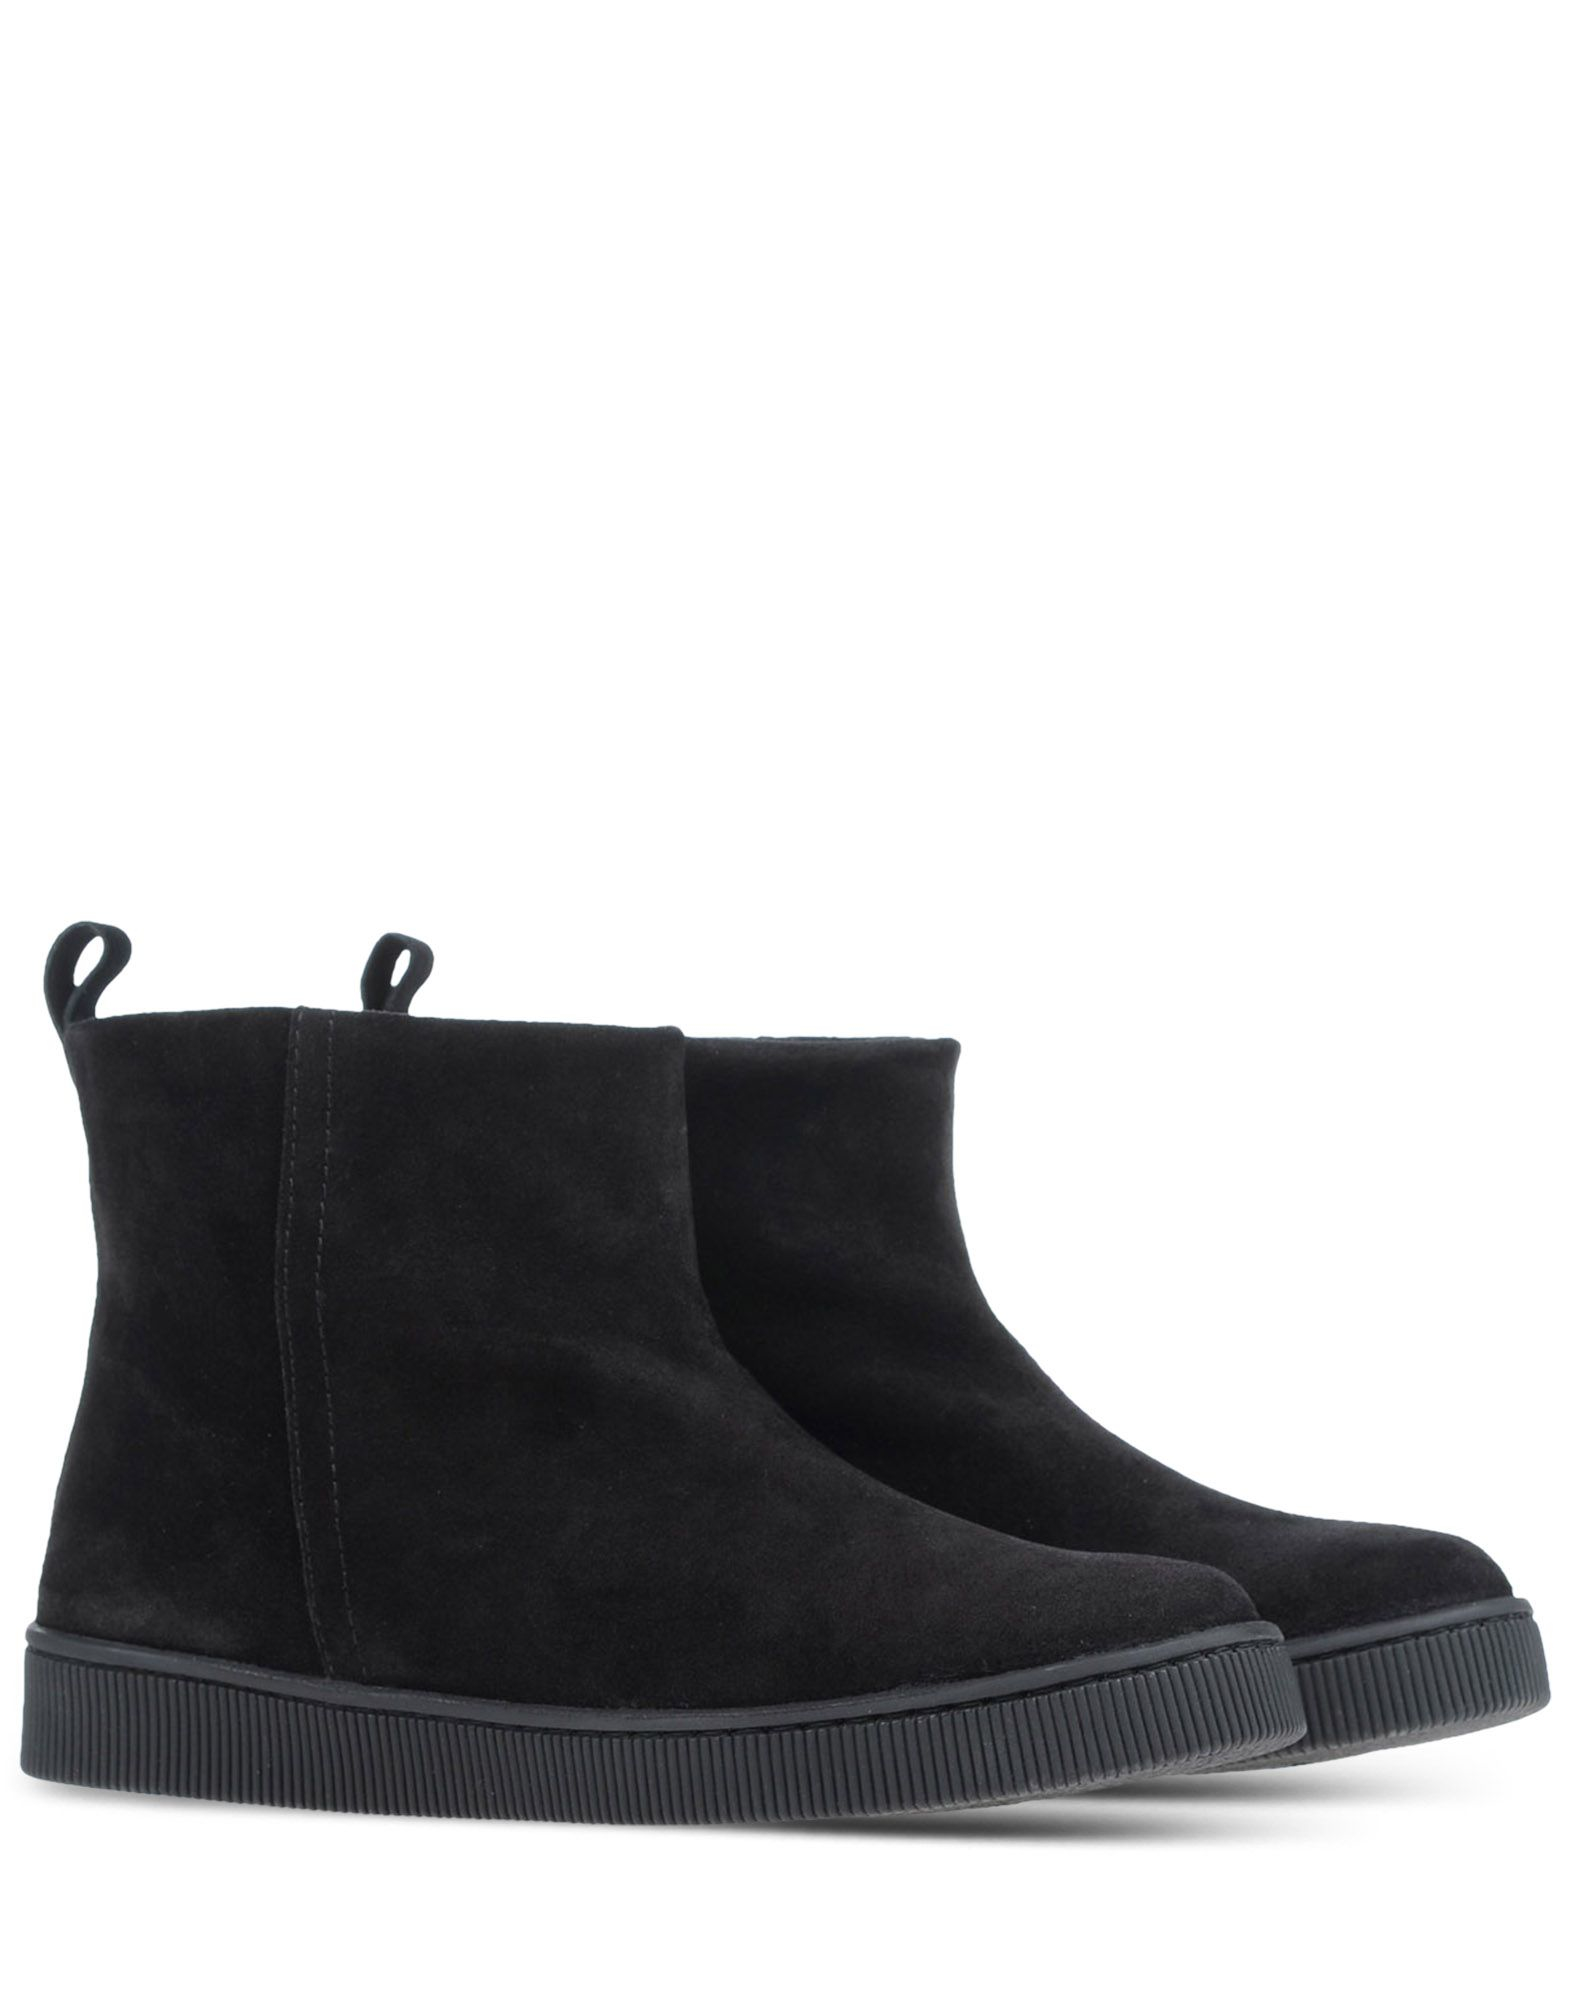 pedro garcia fur lined suede ankle boots in black lyst